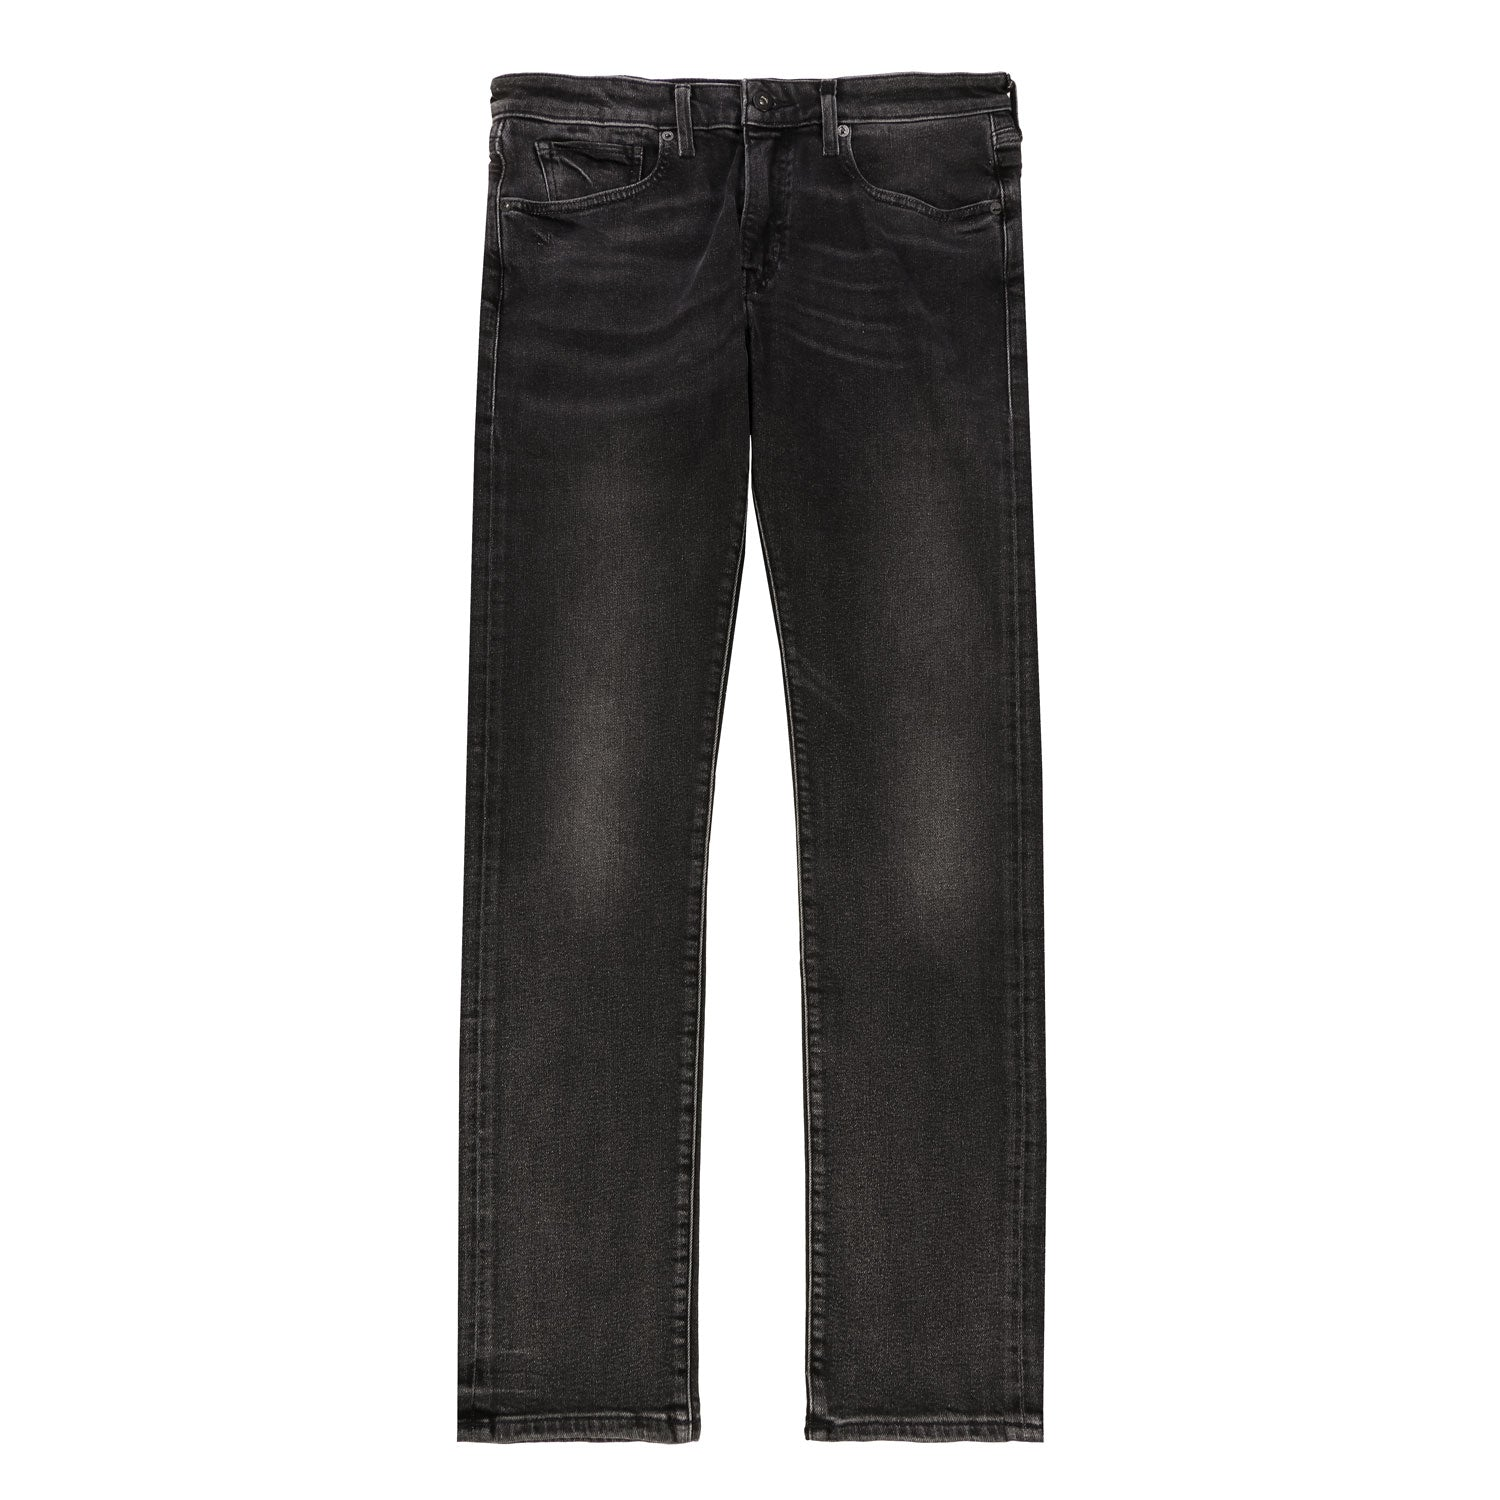 Levi's Made & Crafted Slim Jeans schwarz